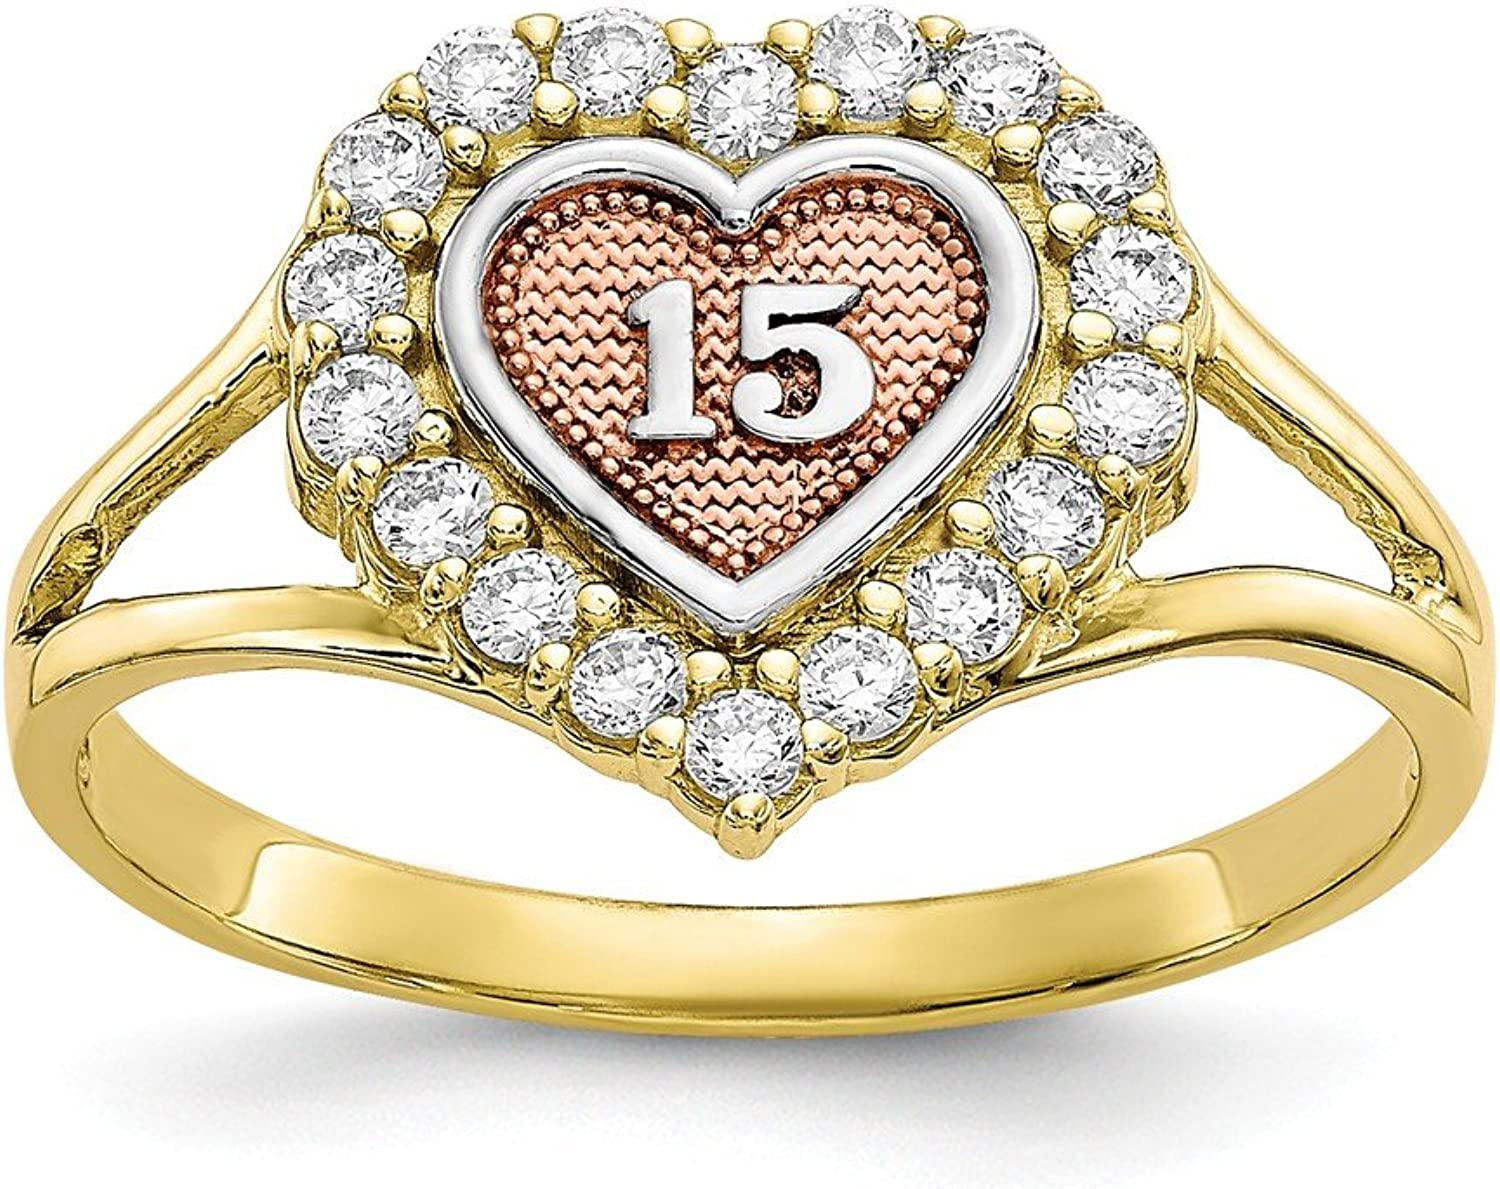 Beautiful White and yellow gold 10K Whiteandyellowgold 10k Twotone Sweet 15 Heart Ring